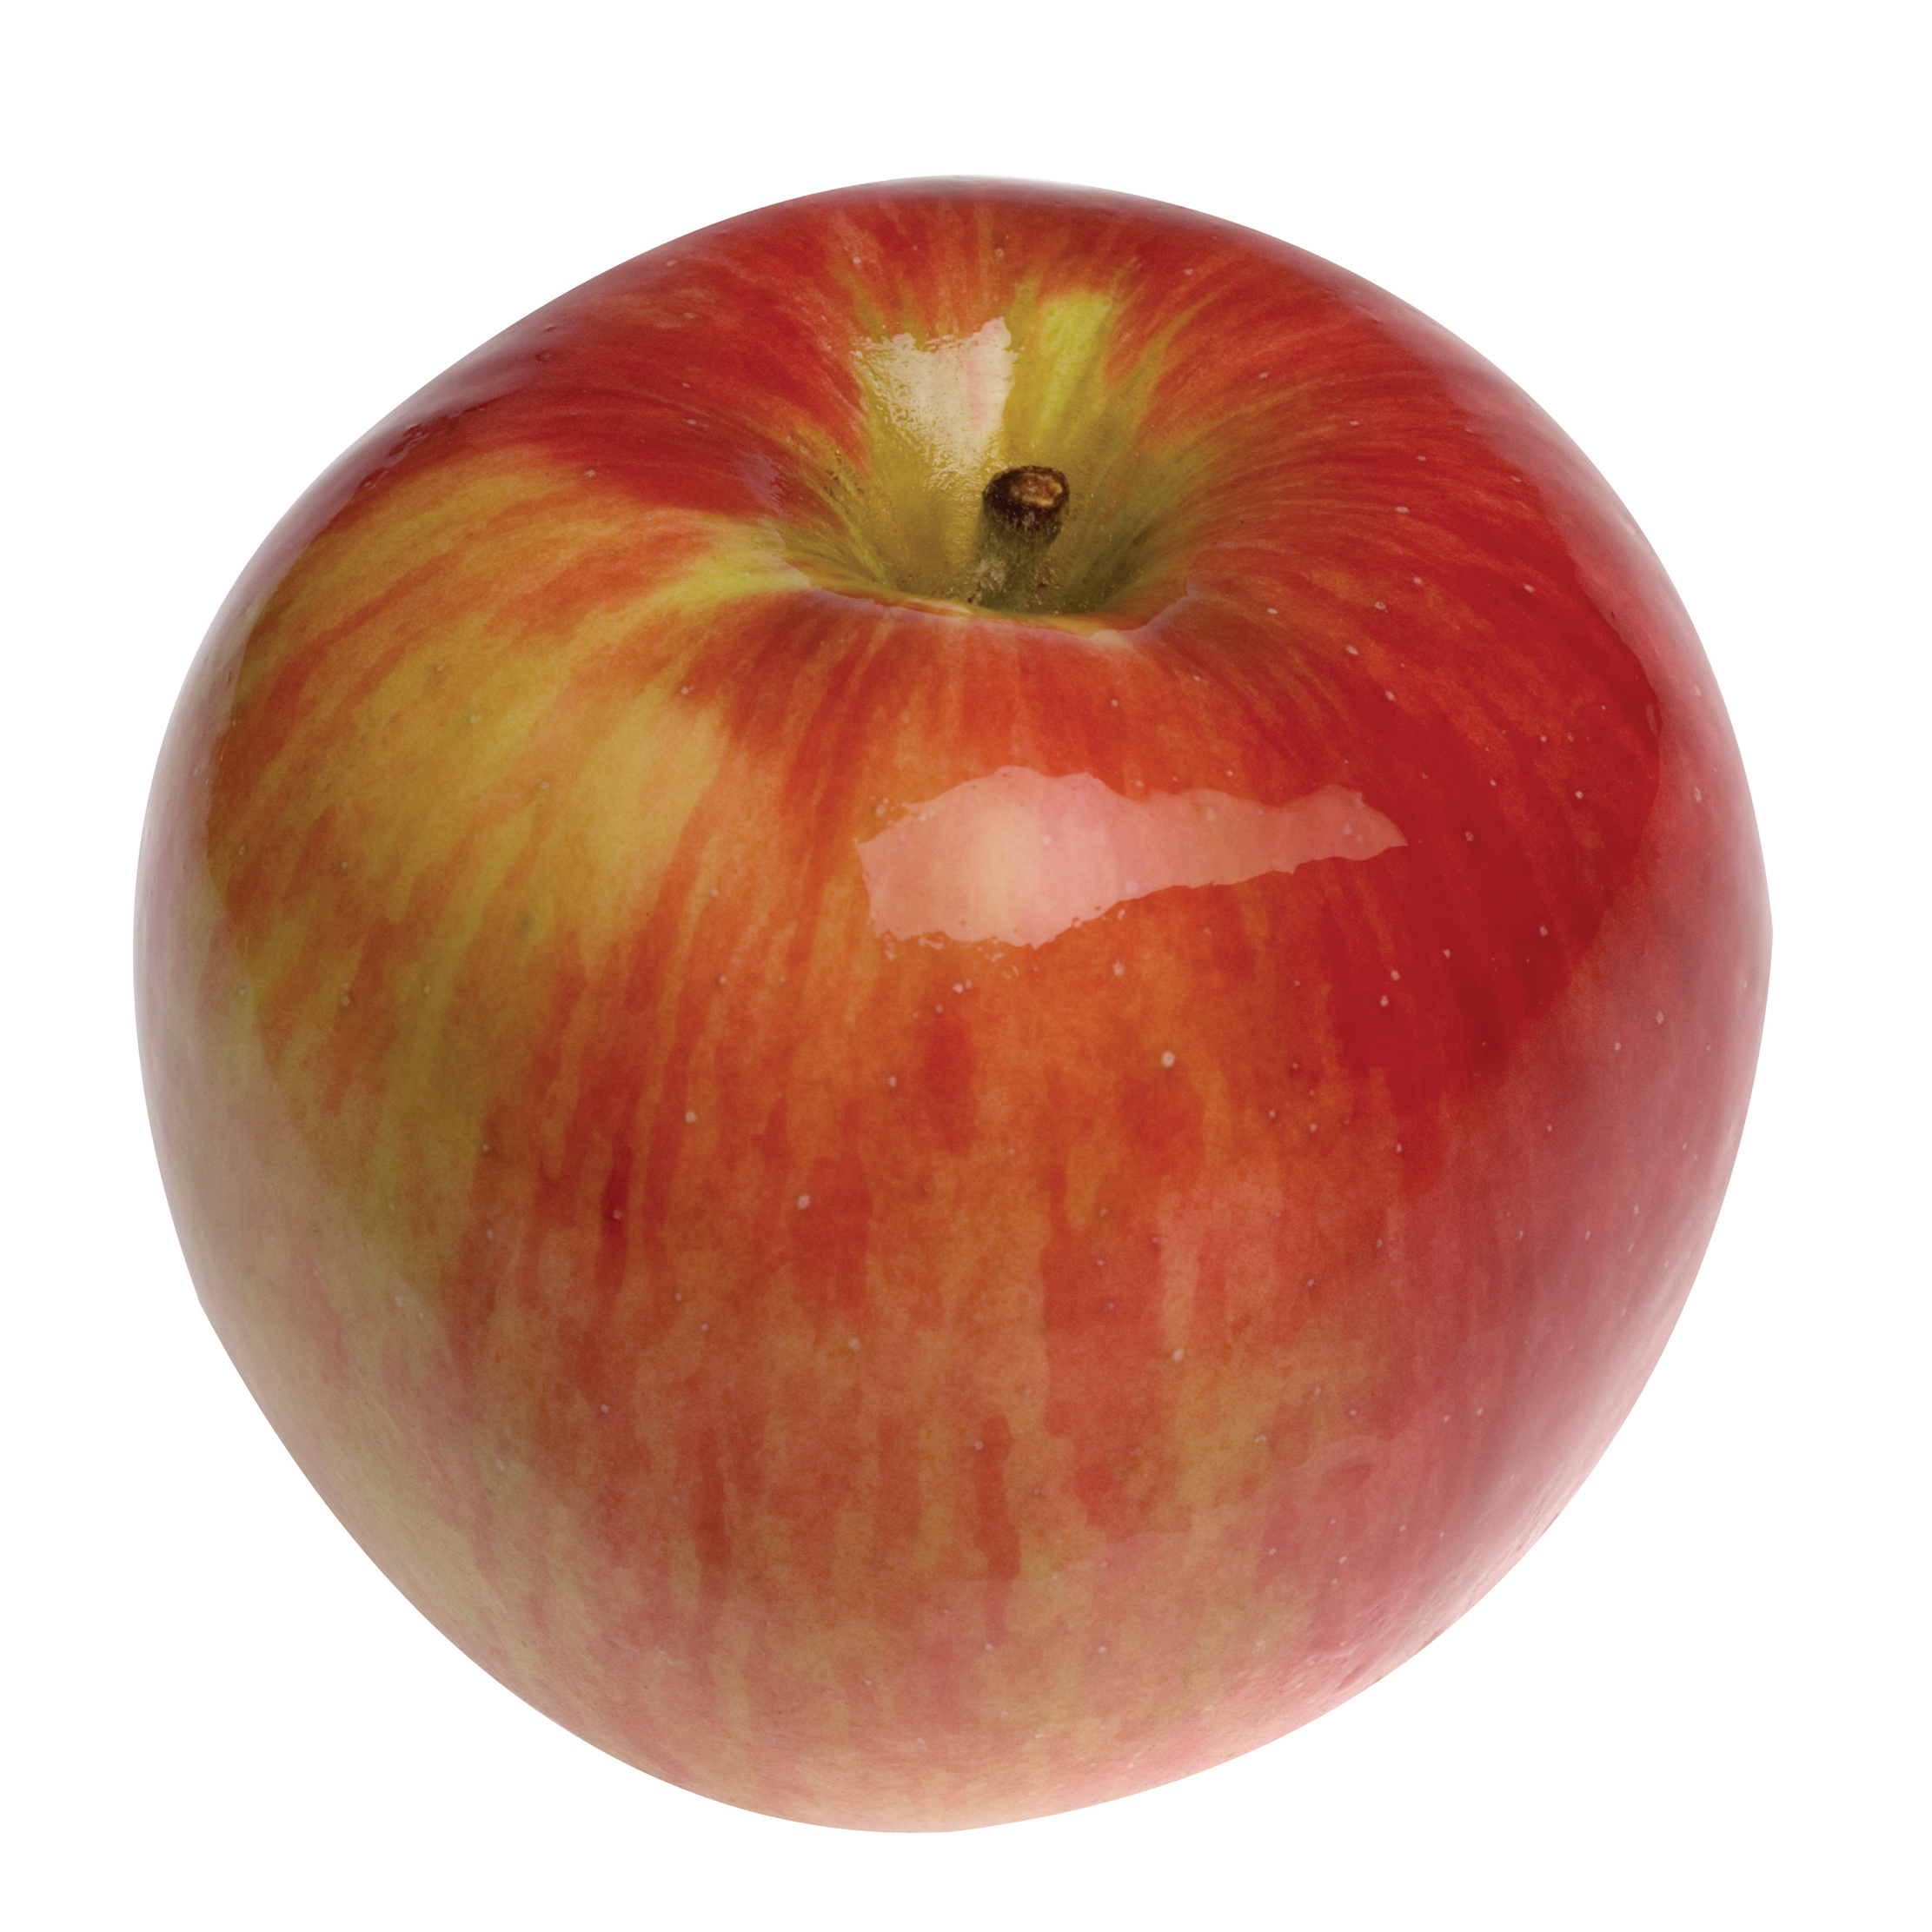 malus domestica apple johnathon blerick trees buy online